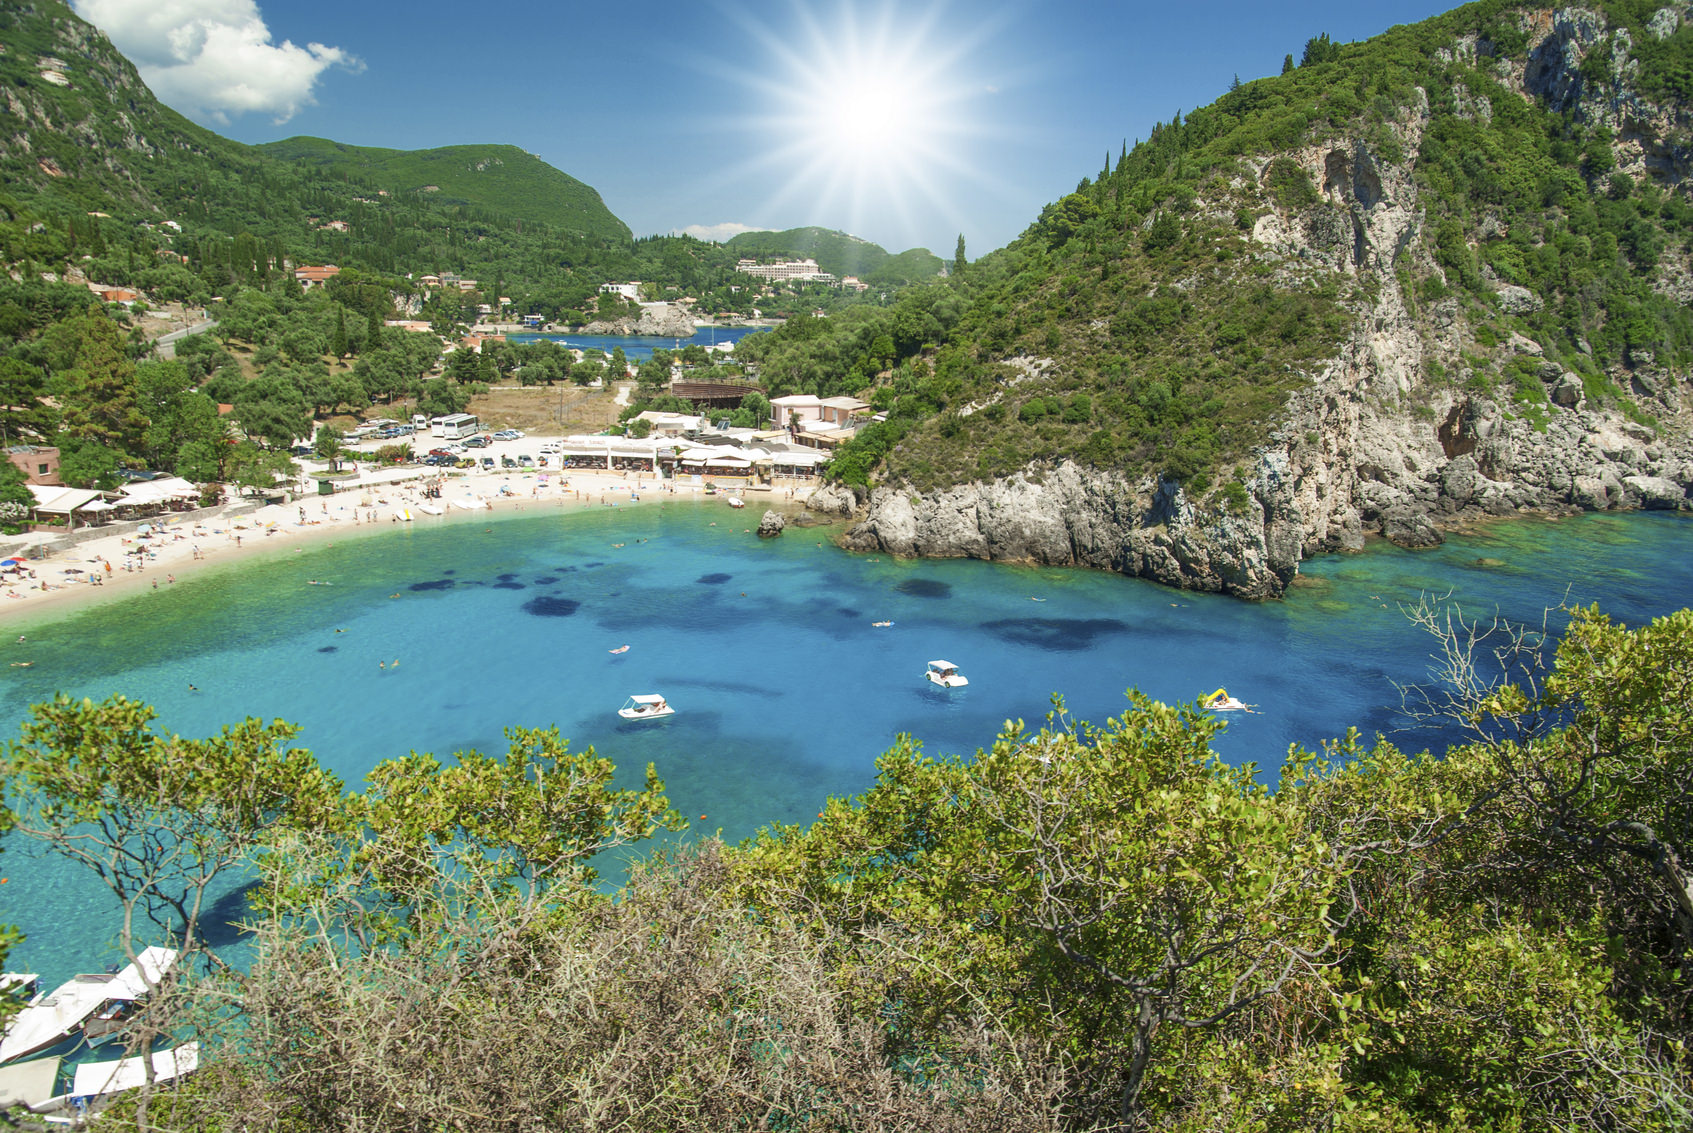 Things to Do When Visiting Paleokastritsa, Corfu